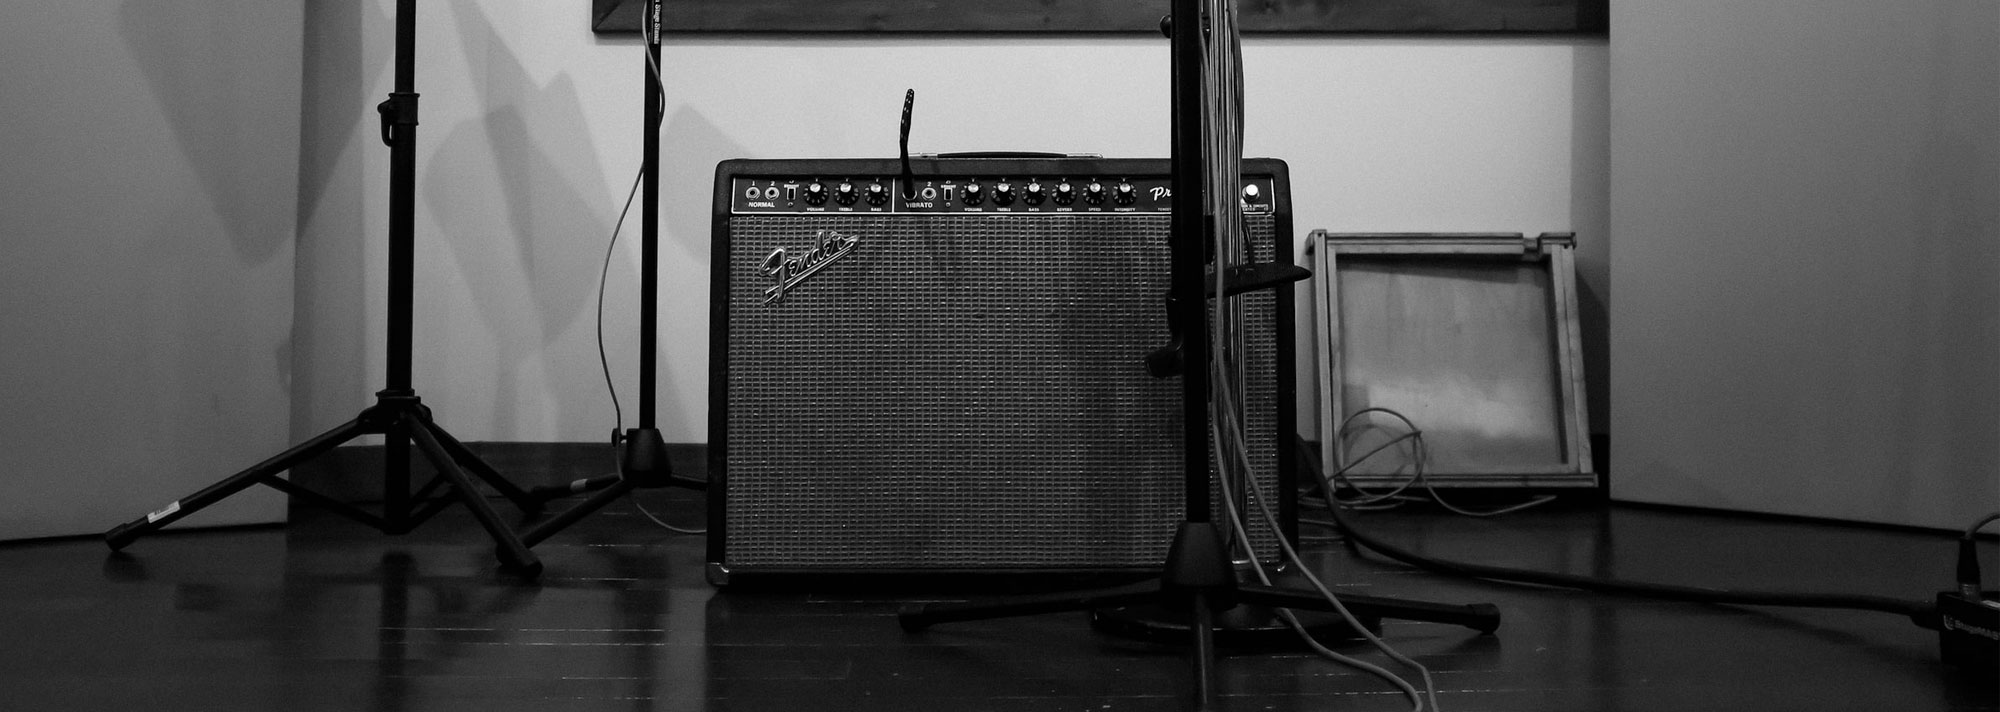 Fender Princeton amplifier with music stand and microphone in a recording studio booth